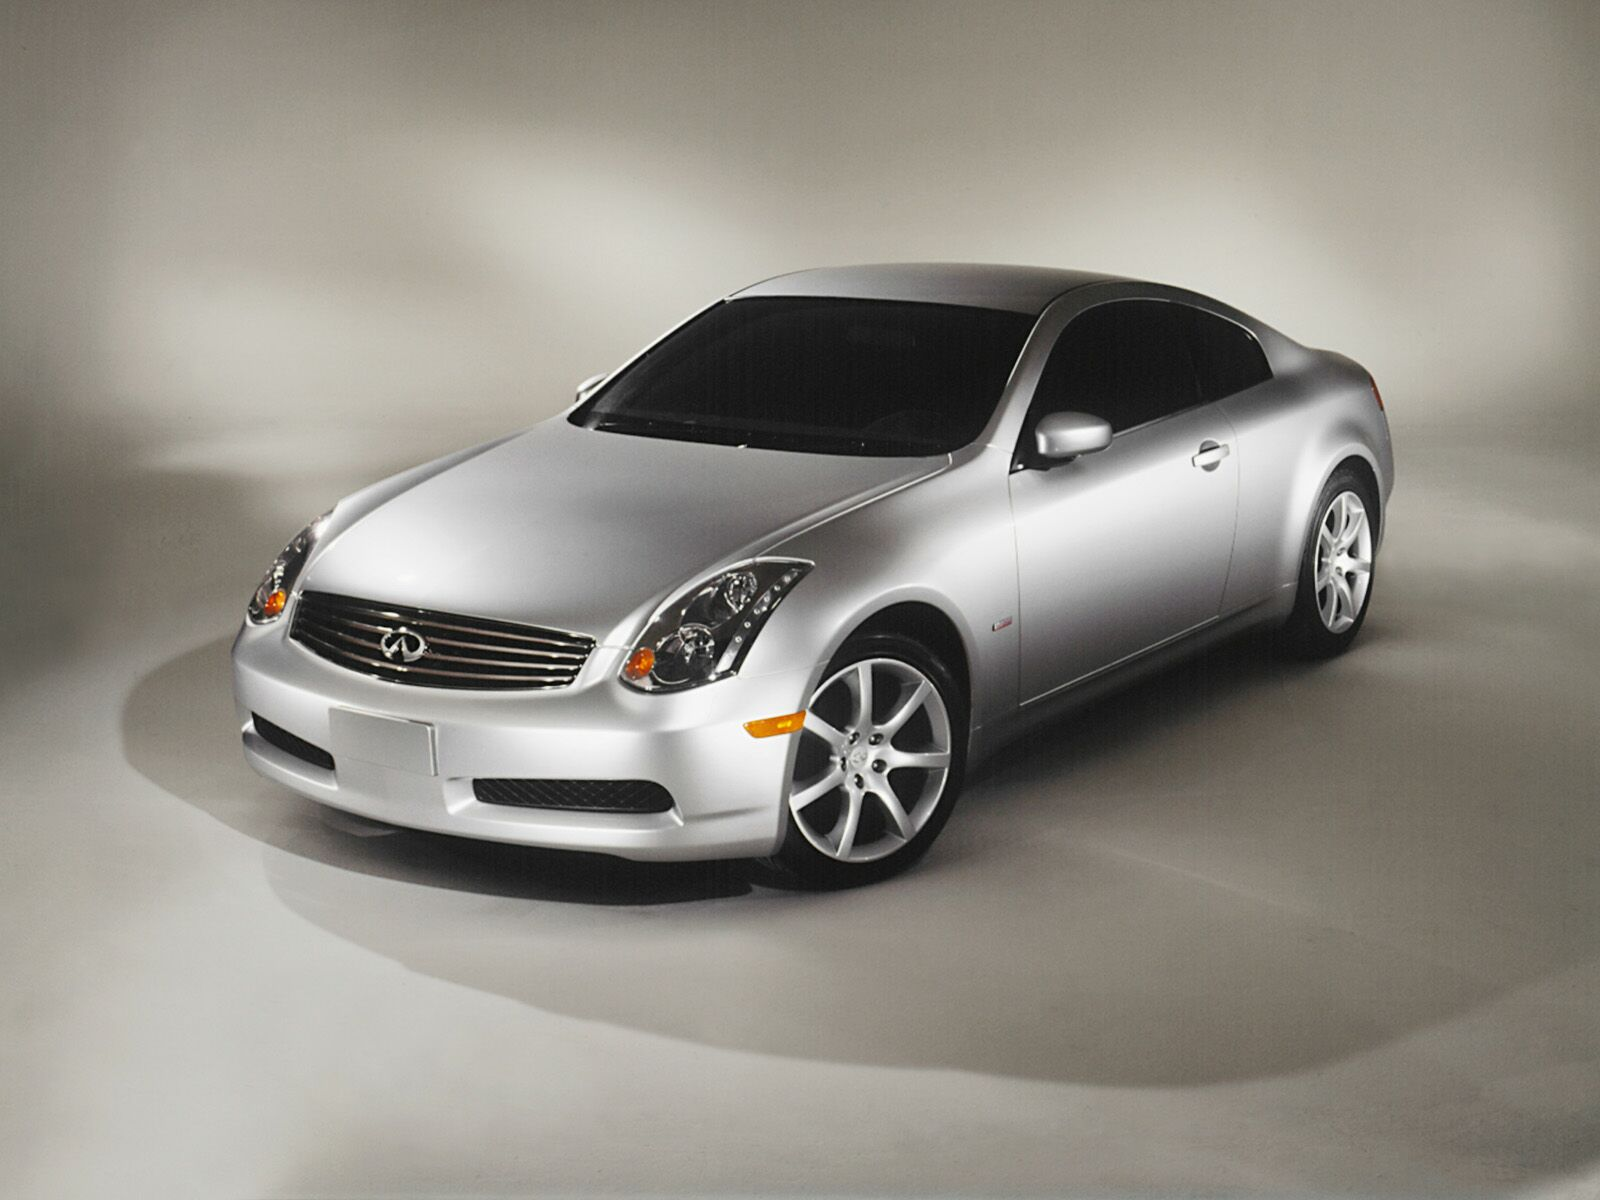 Infiniti G35 Coupe photo 8595